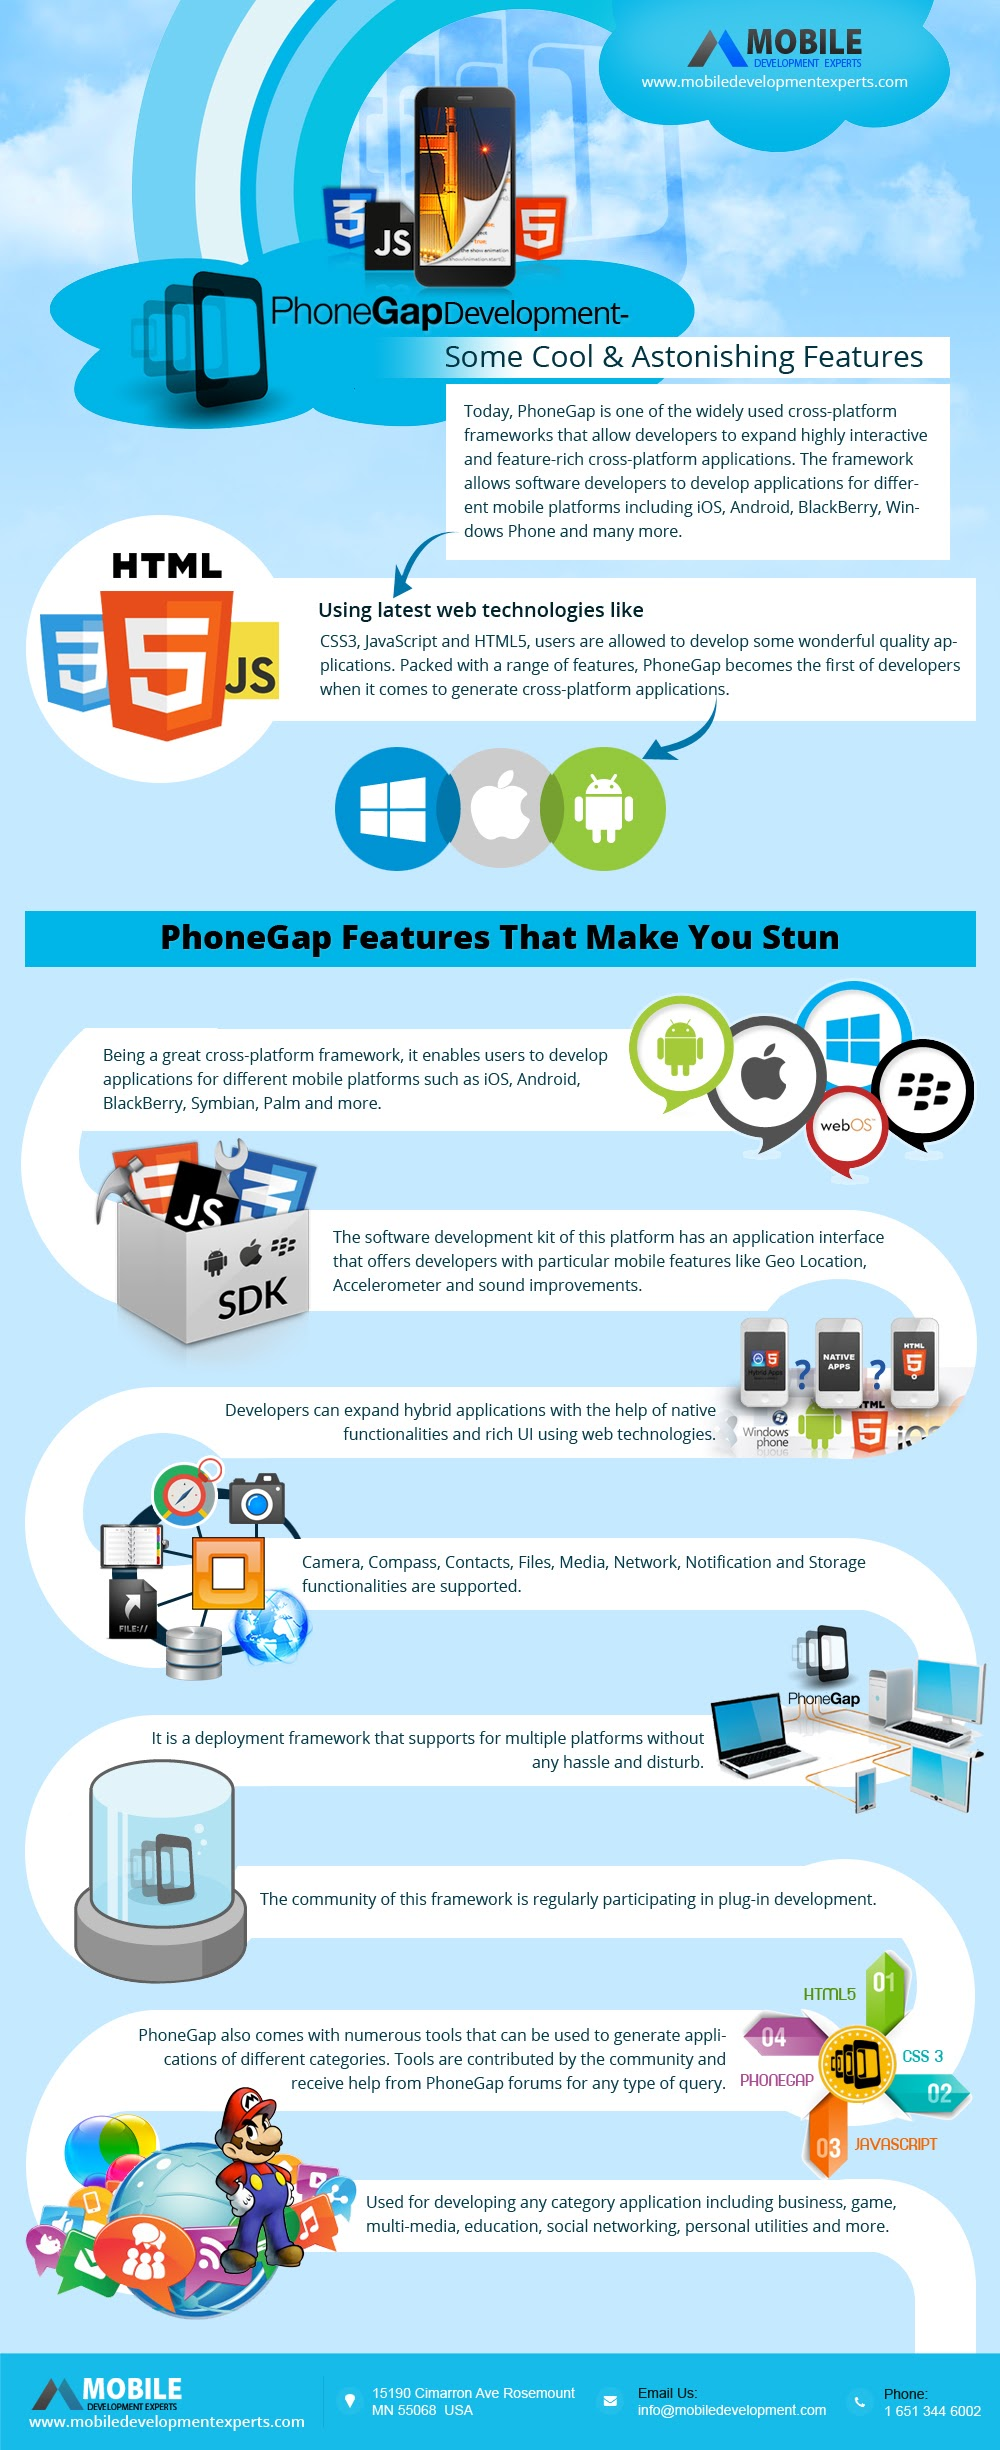 Mobile Devices, Technology, PhoneGap-Development-Some-Cool-And-Astonishing-Features  #Infographic